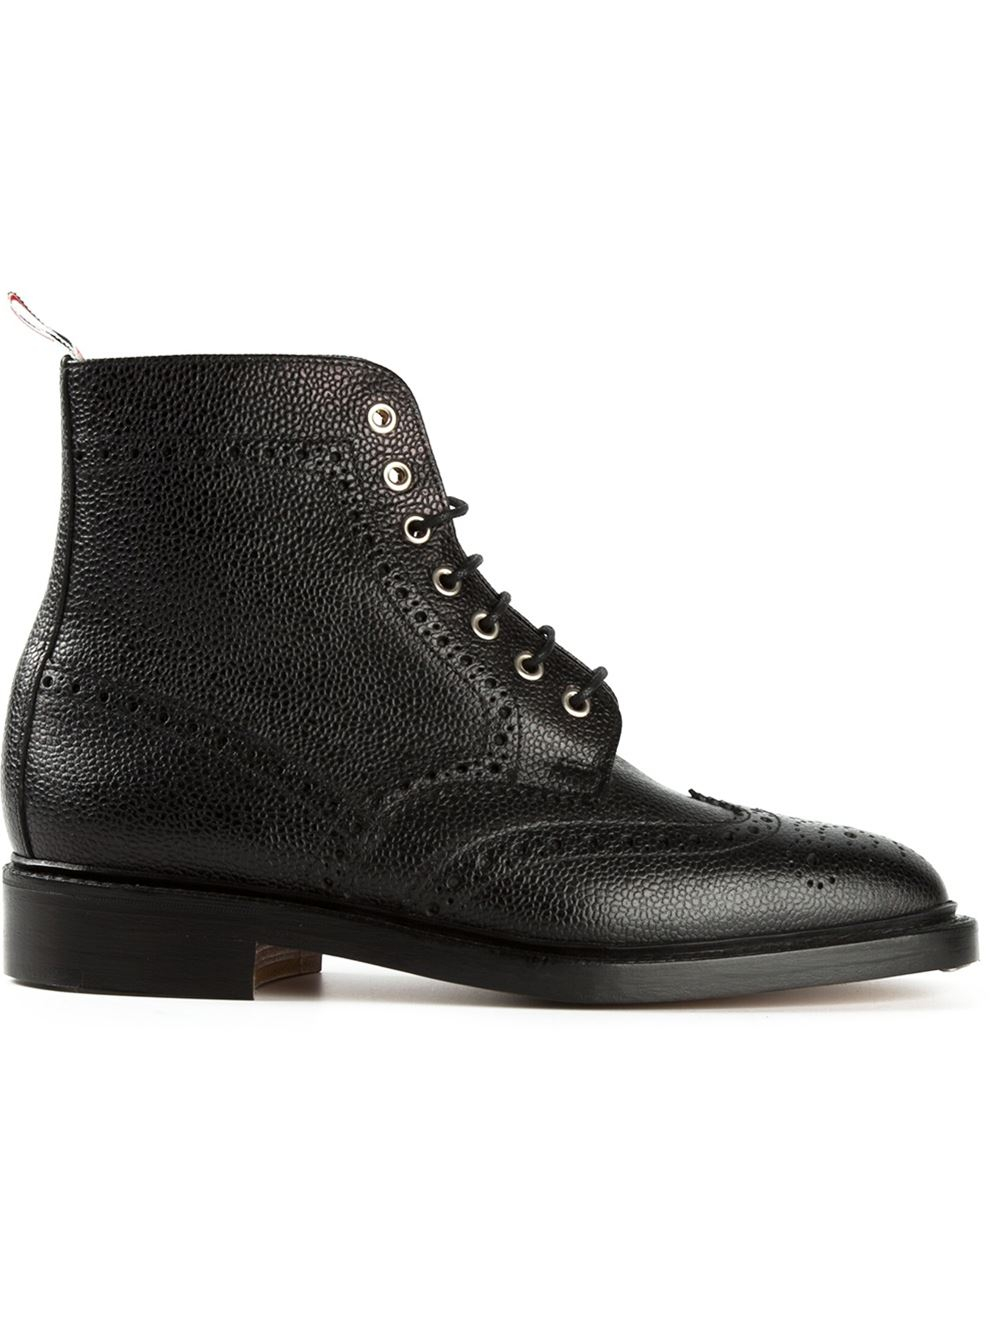 thom browne brogue boots in black for lyst